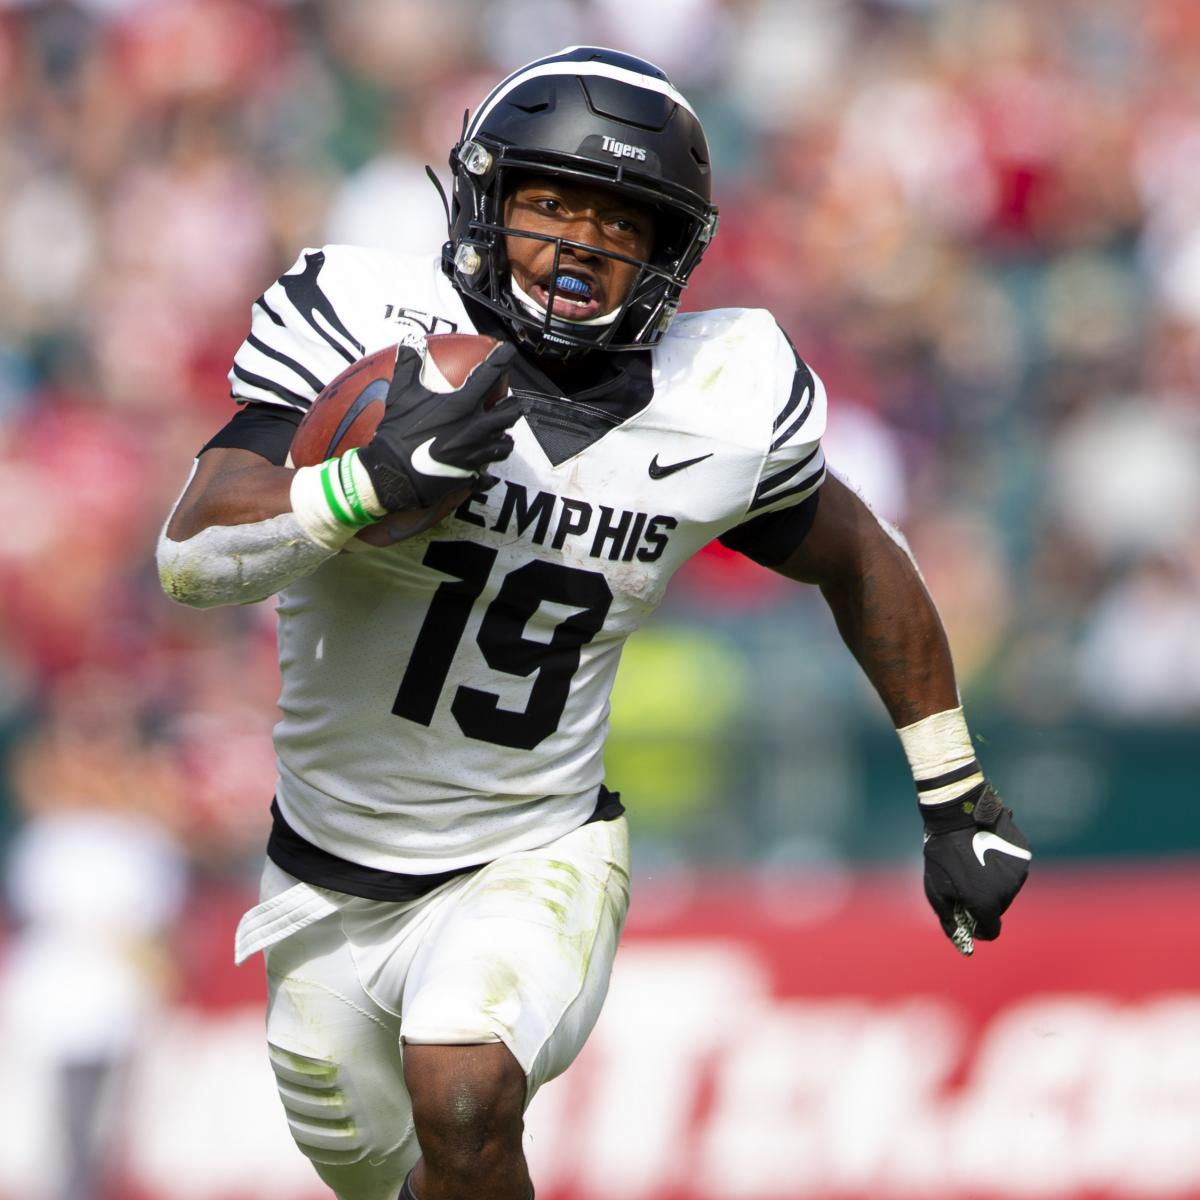 Cotton Bowl 2019: Full Preview and Predictions for Memphis vs. Penn State